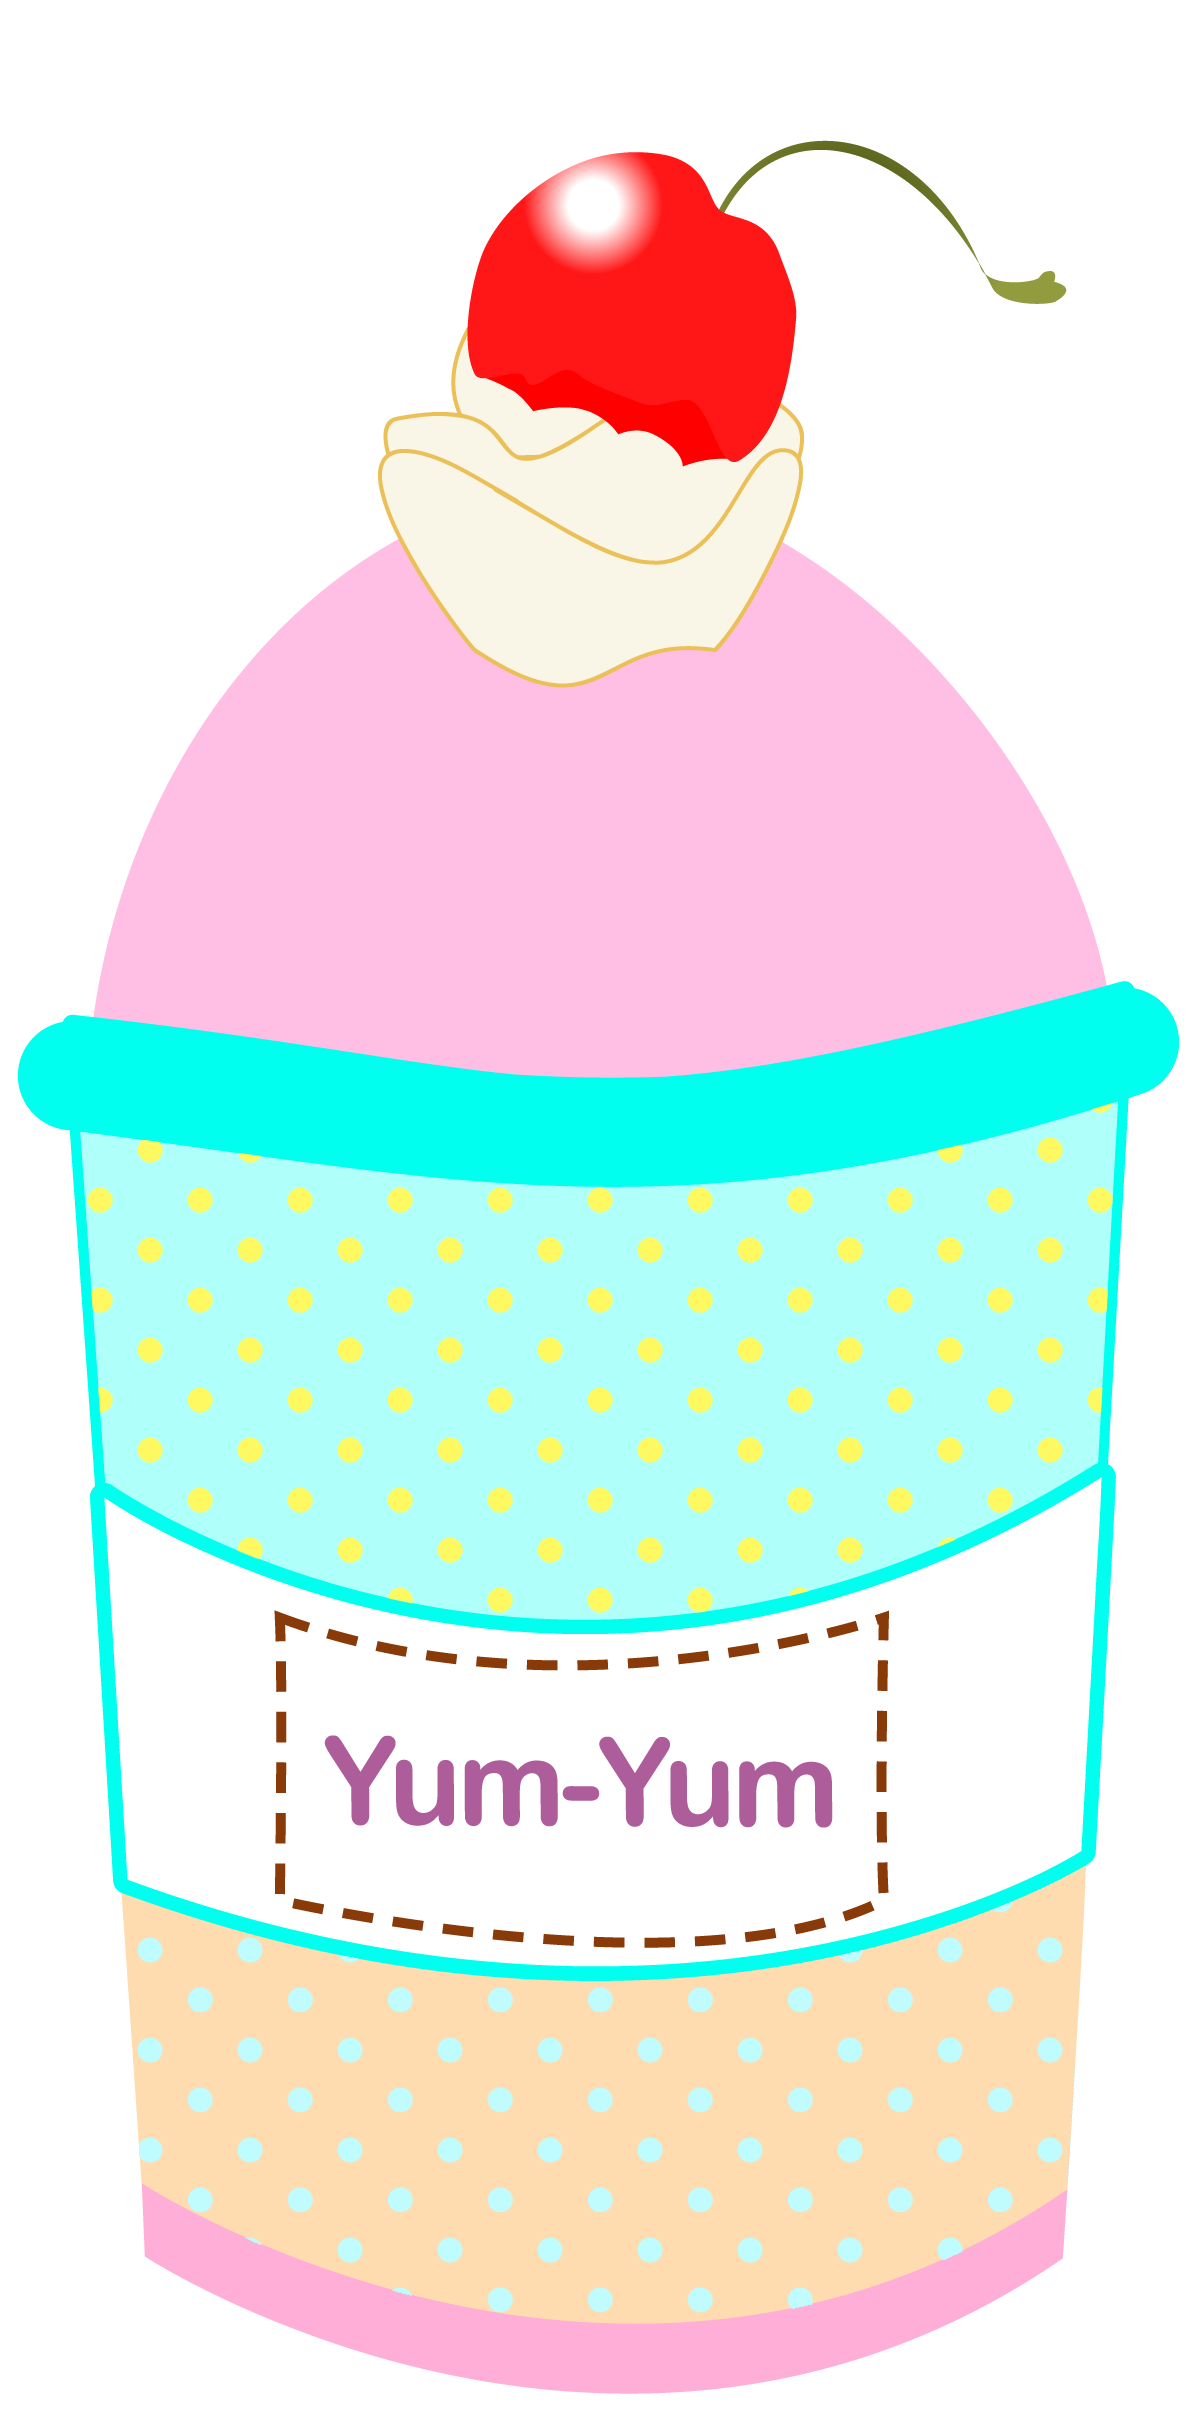 cream n png. Ice clipart transparent background